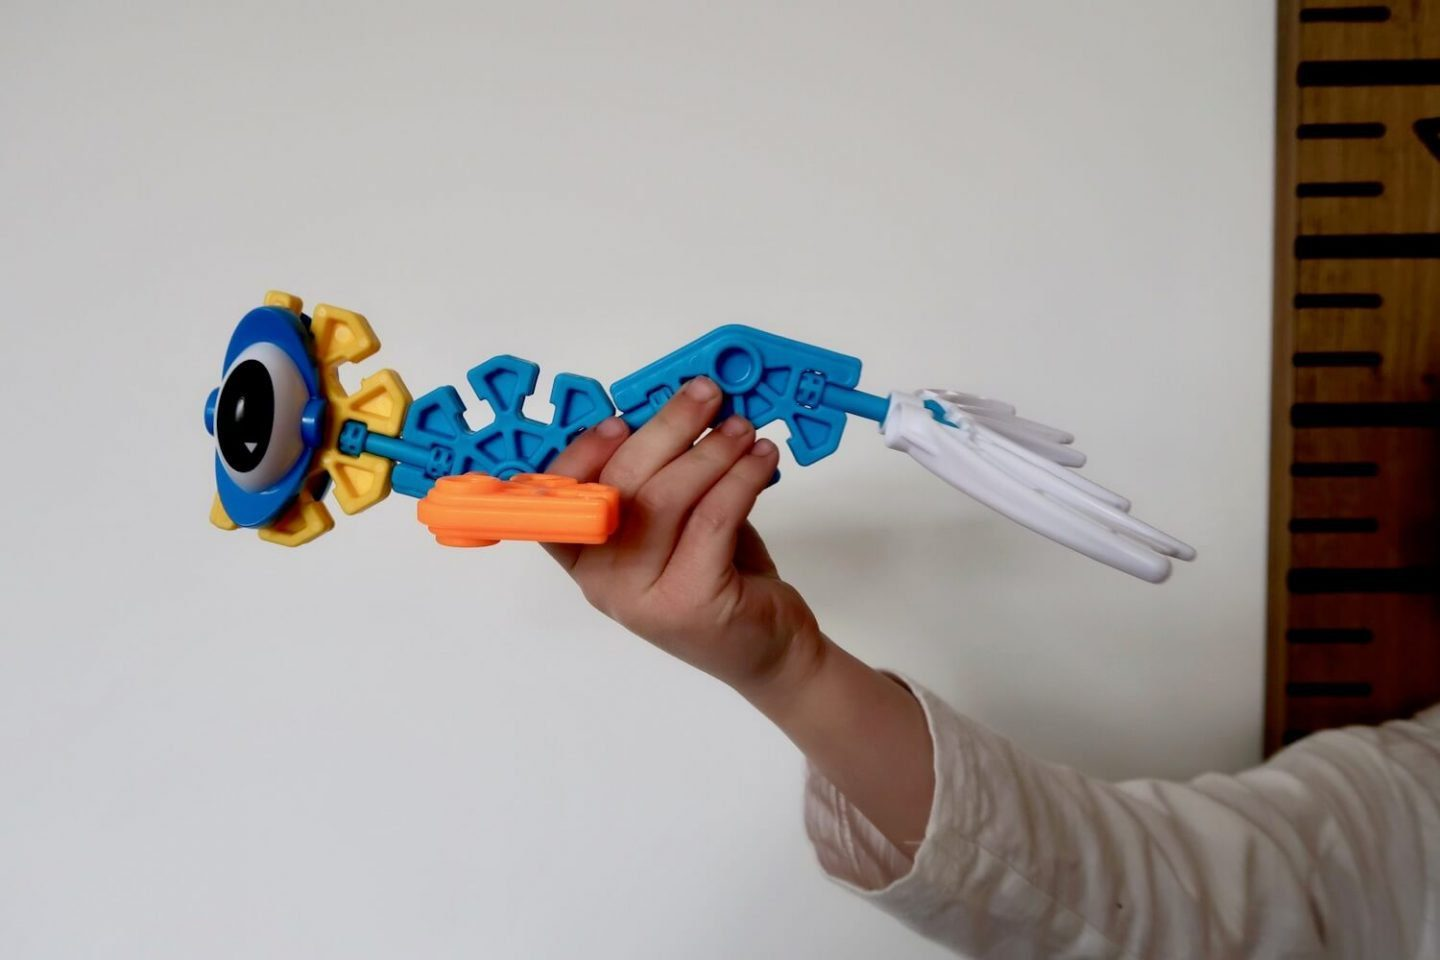 A sea monster made out of K'nex